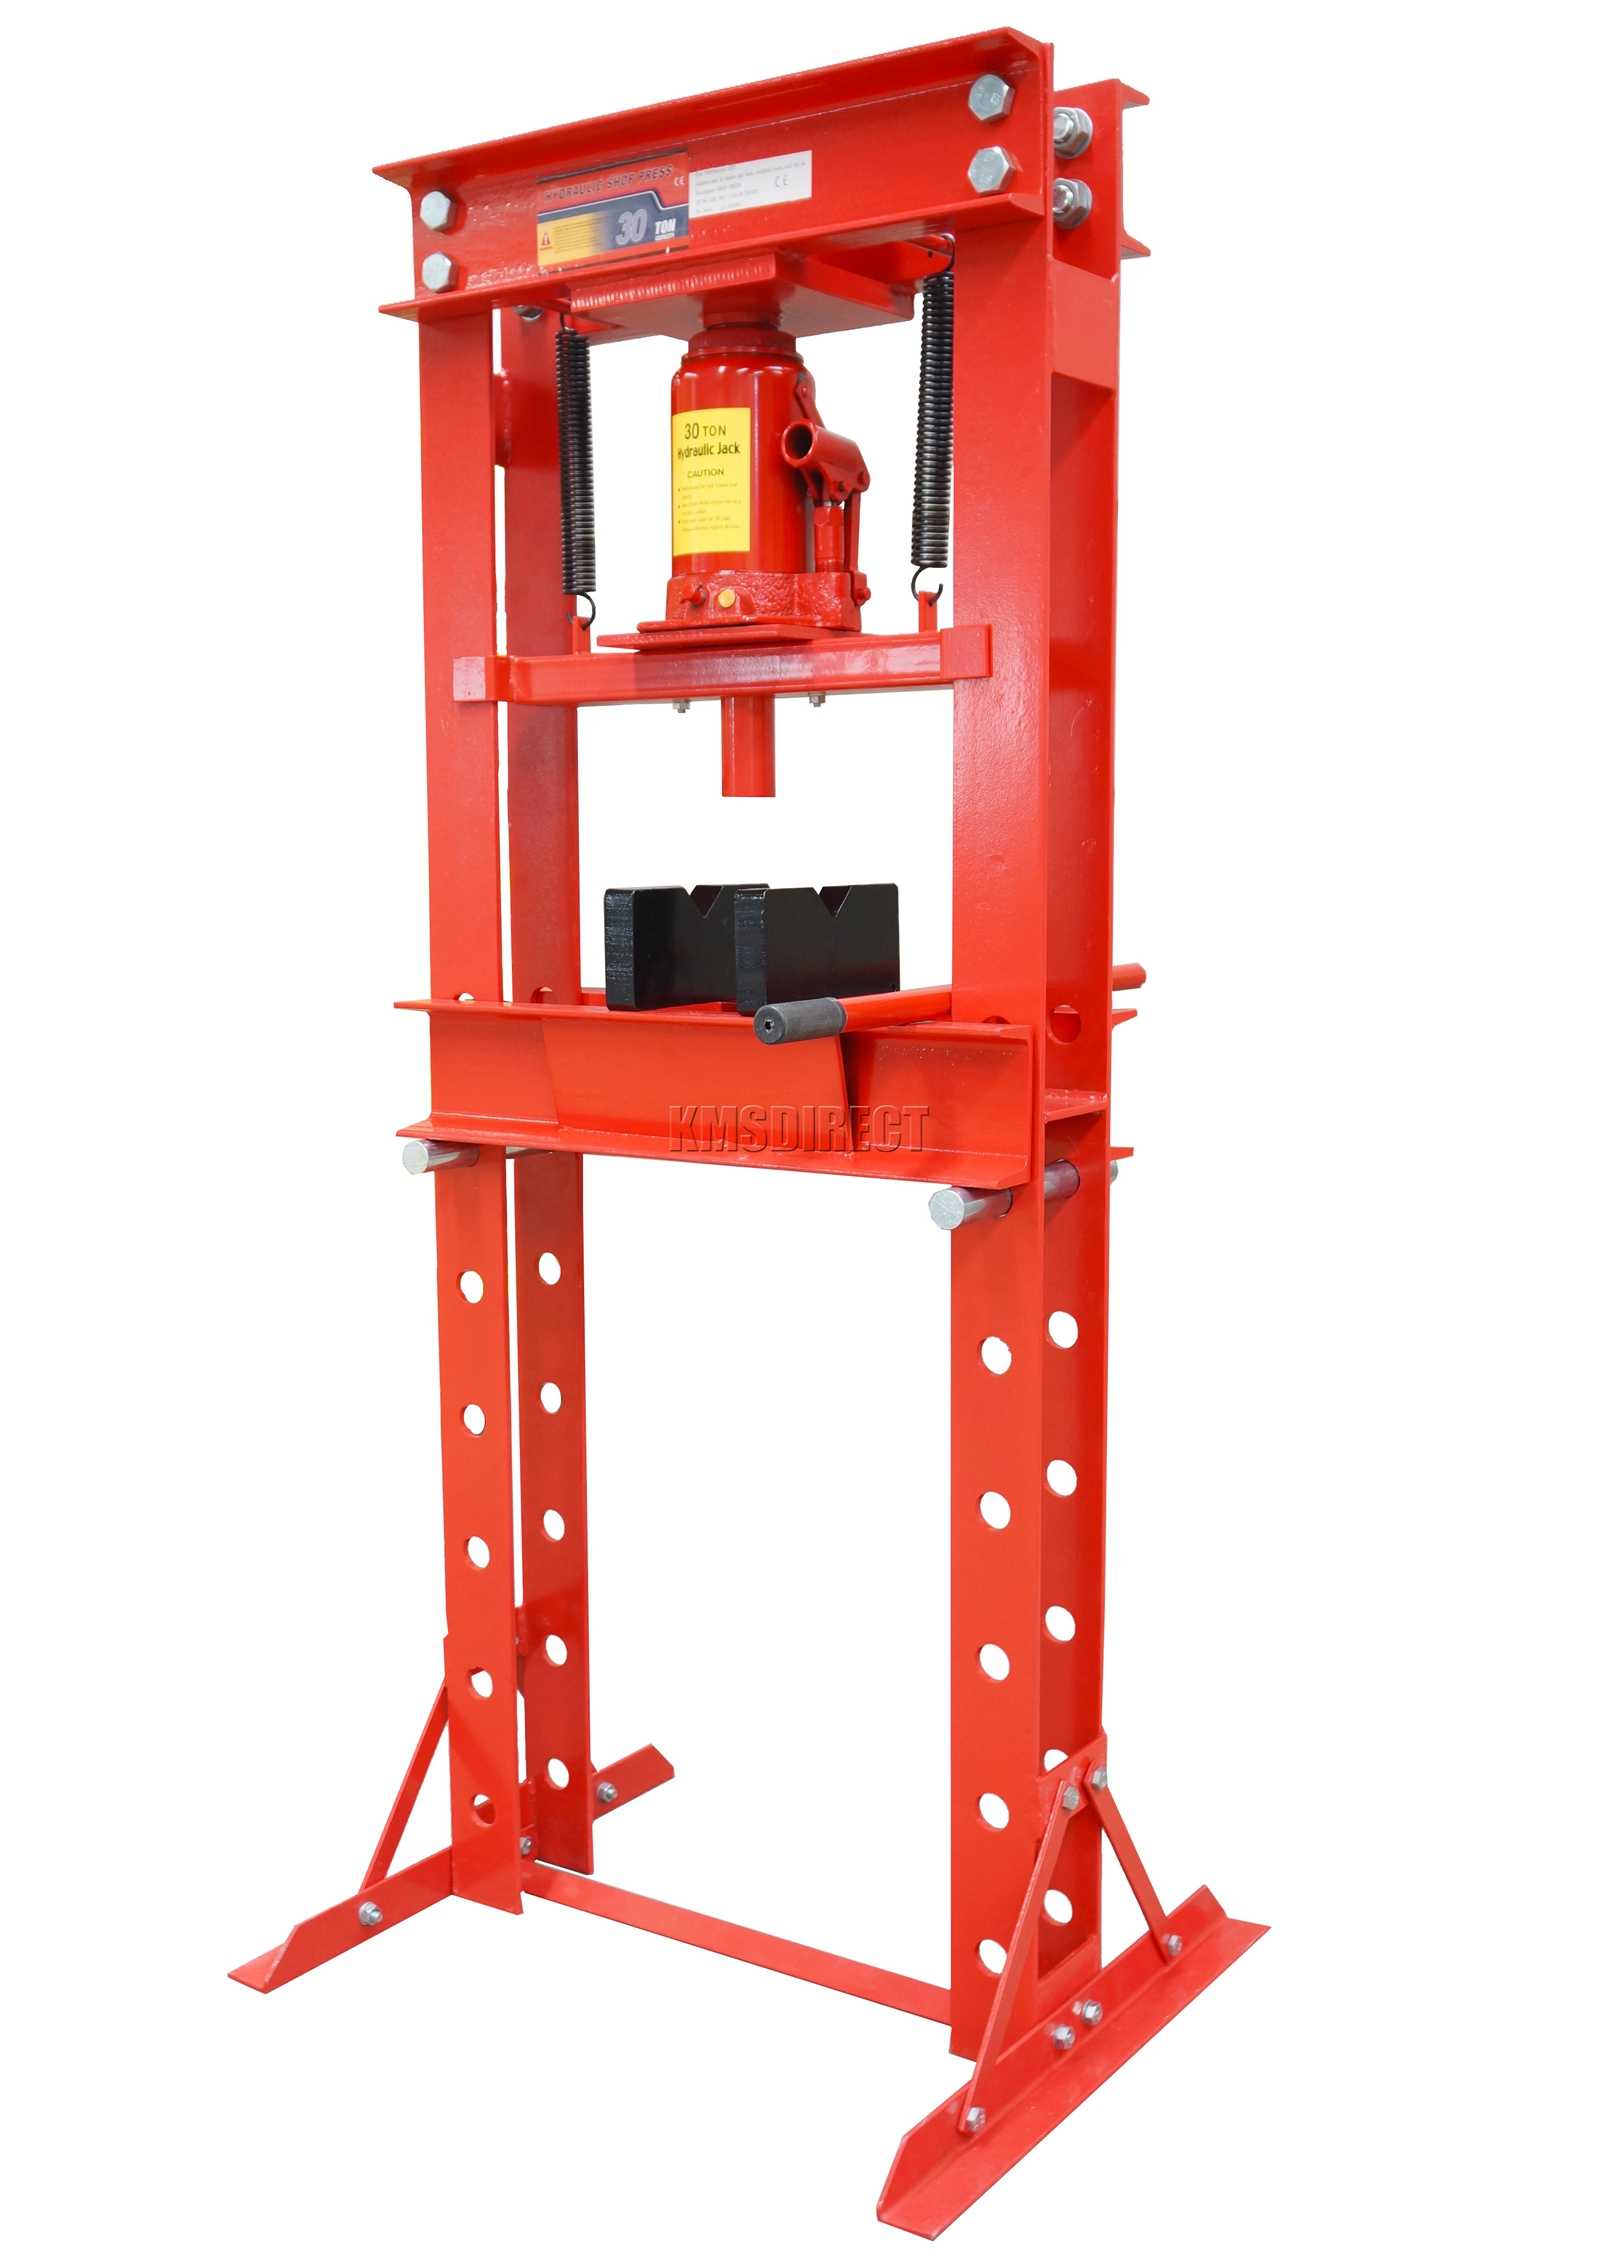 Foxhunter Red 30 Ton Tonne Hydraulic Workshop Garage Shop